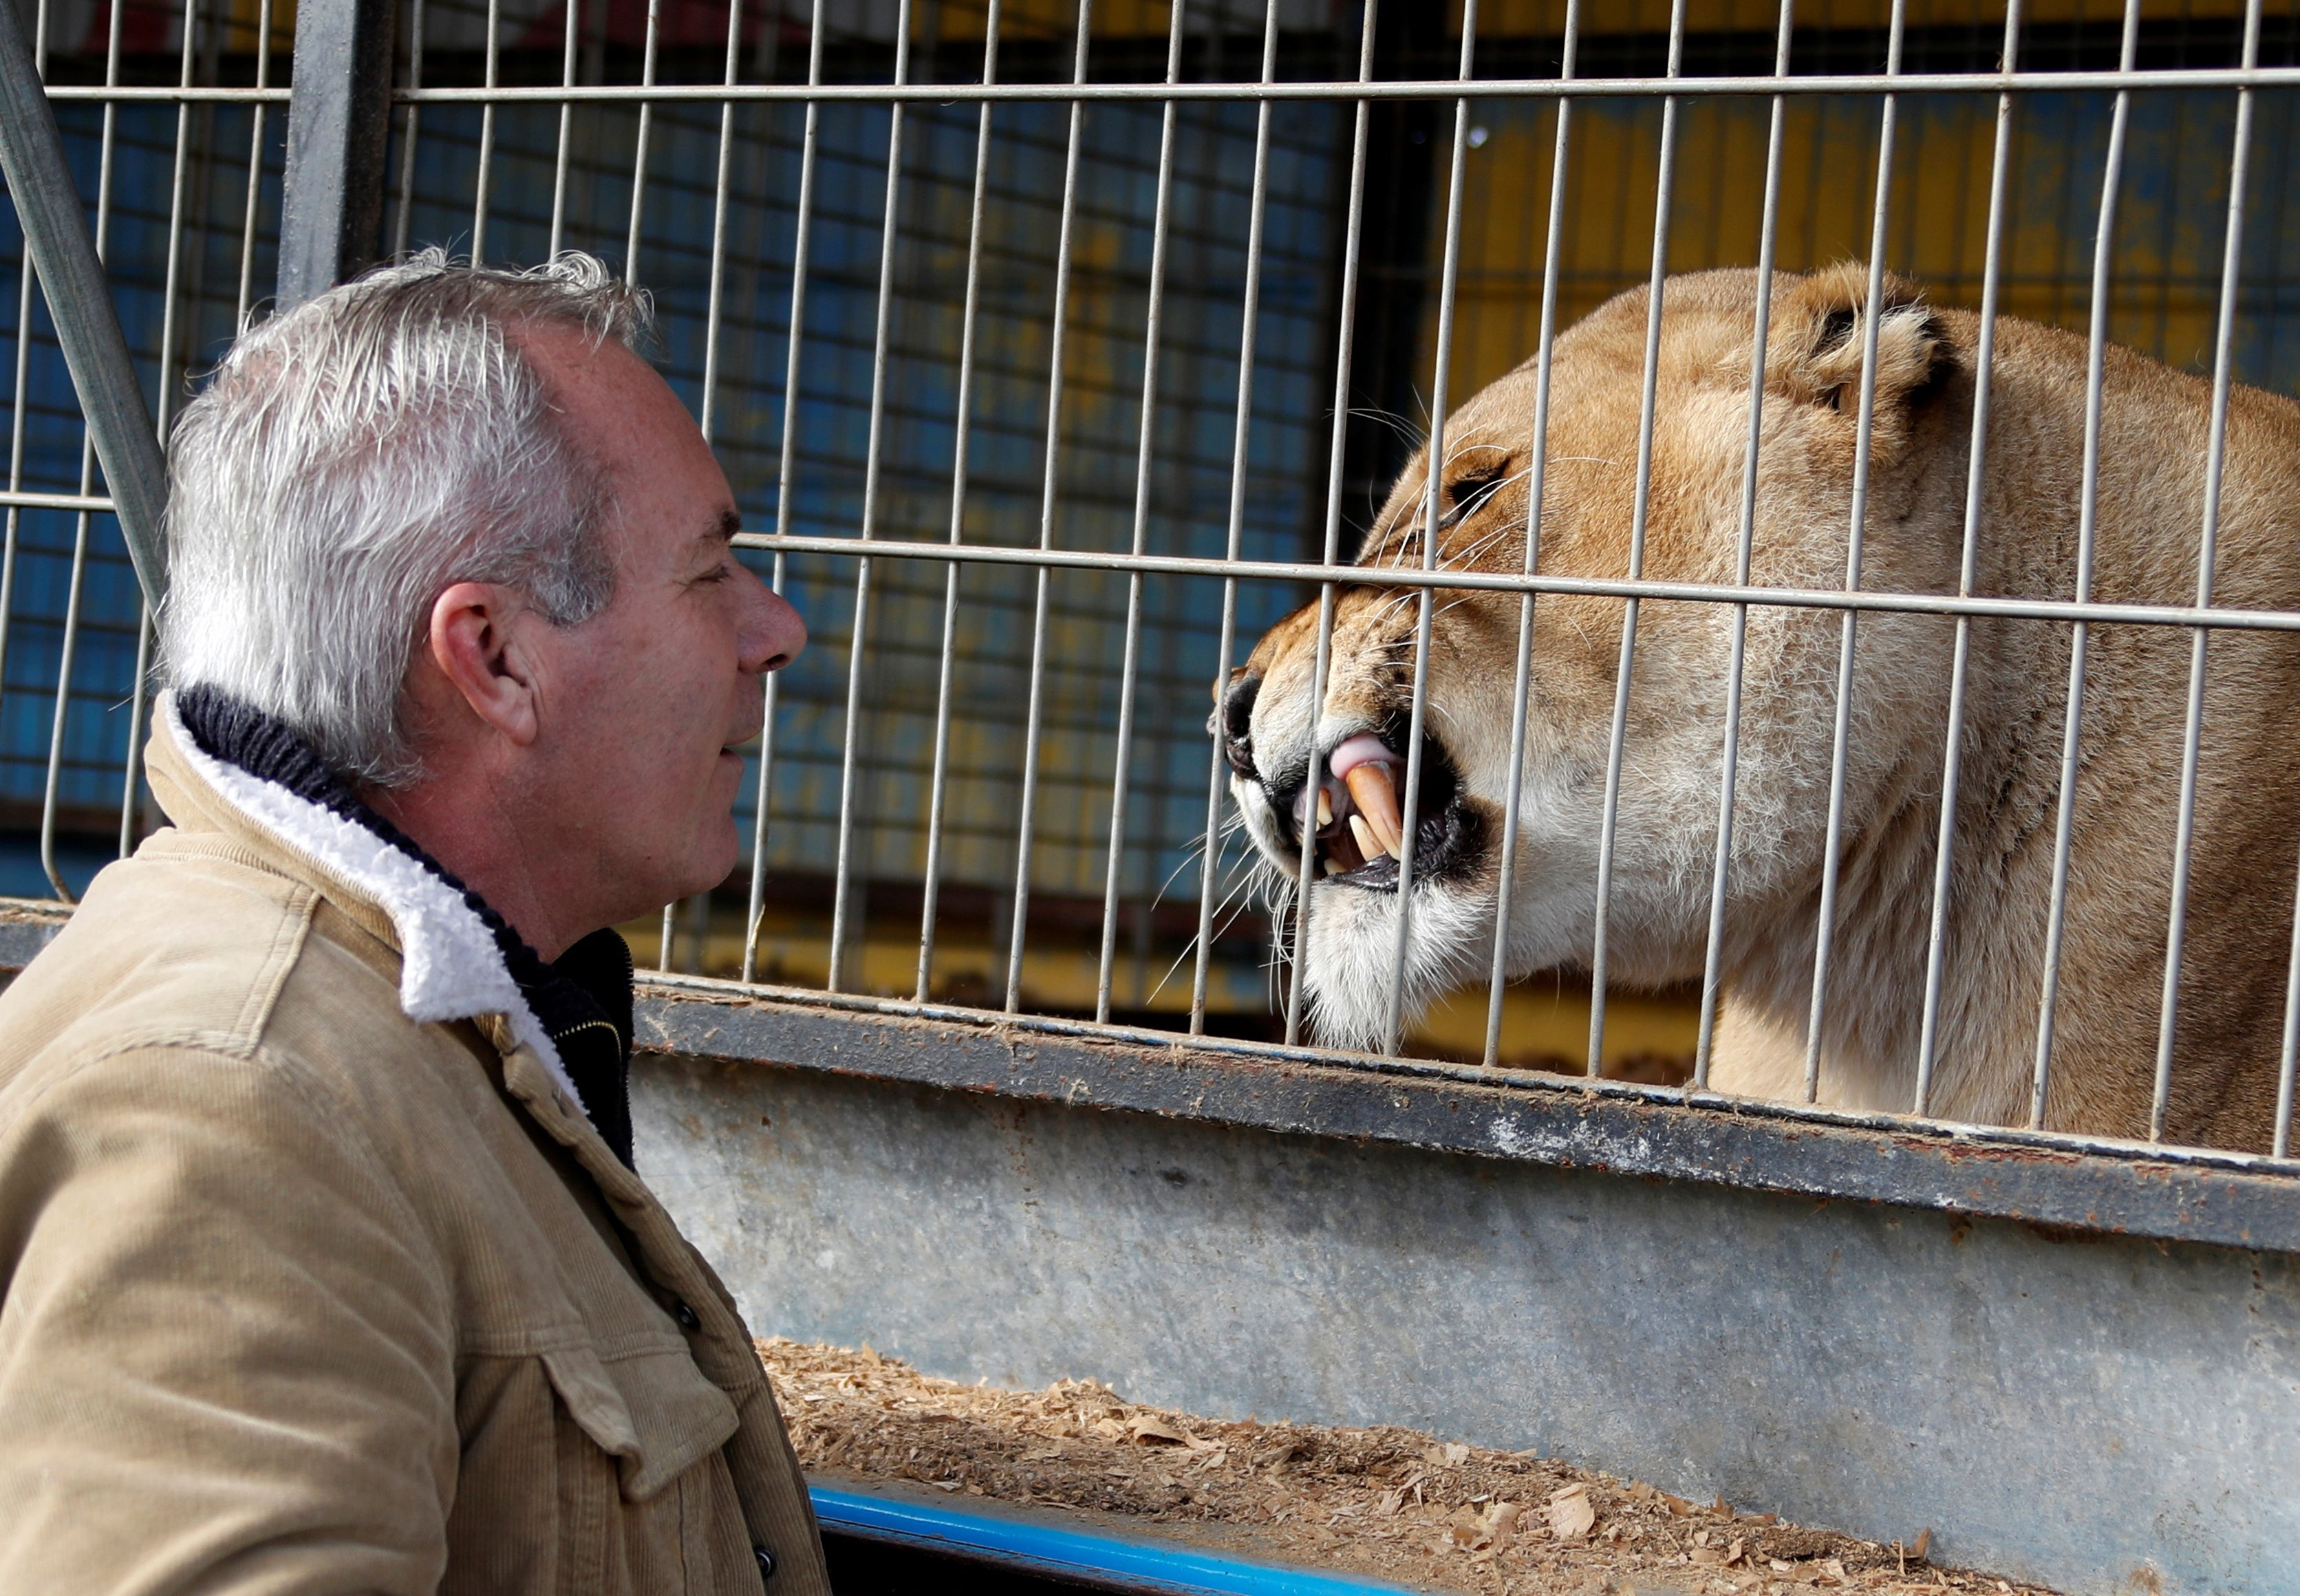 William Kerwich, owner of the Royal Circus and President of the Circus and Shows Animals Union, poses with a lion at the circus home base in Senas as circus shows remained shut as part of COVID-19 restrictions measures to fight the coronavirus disease outbreak in France, February 9, 2021. REUTERS/Eric Gaillard